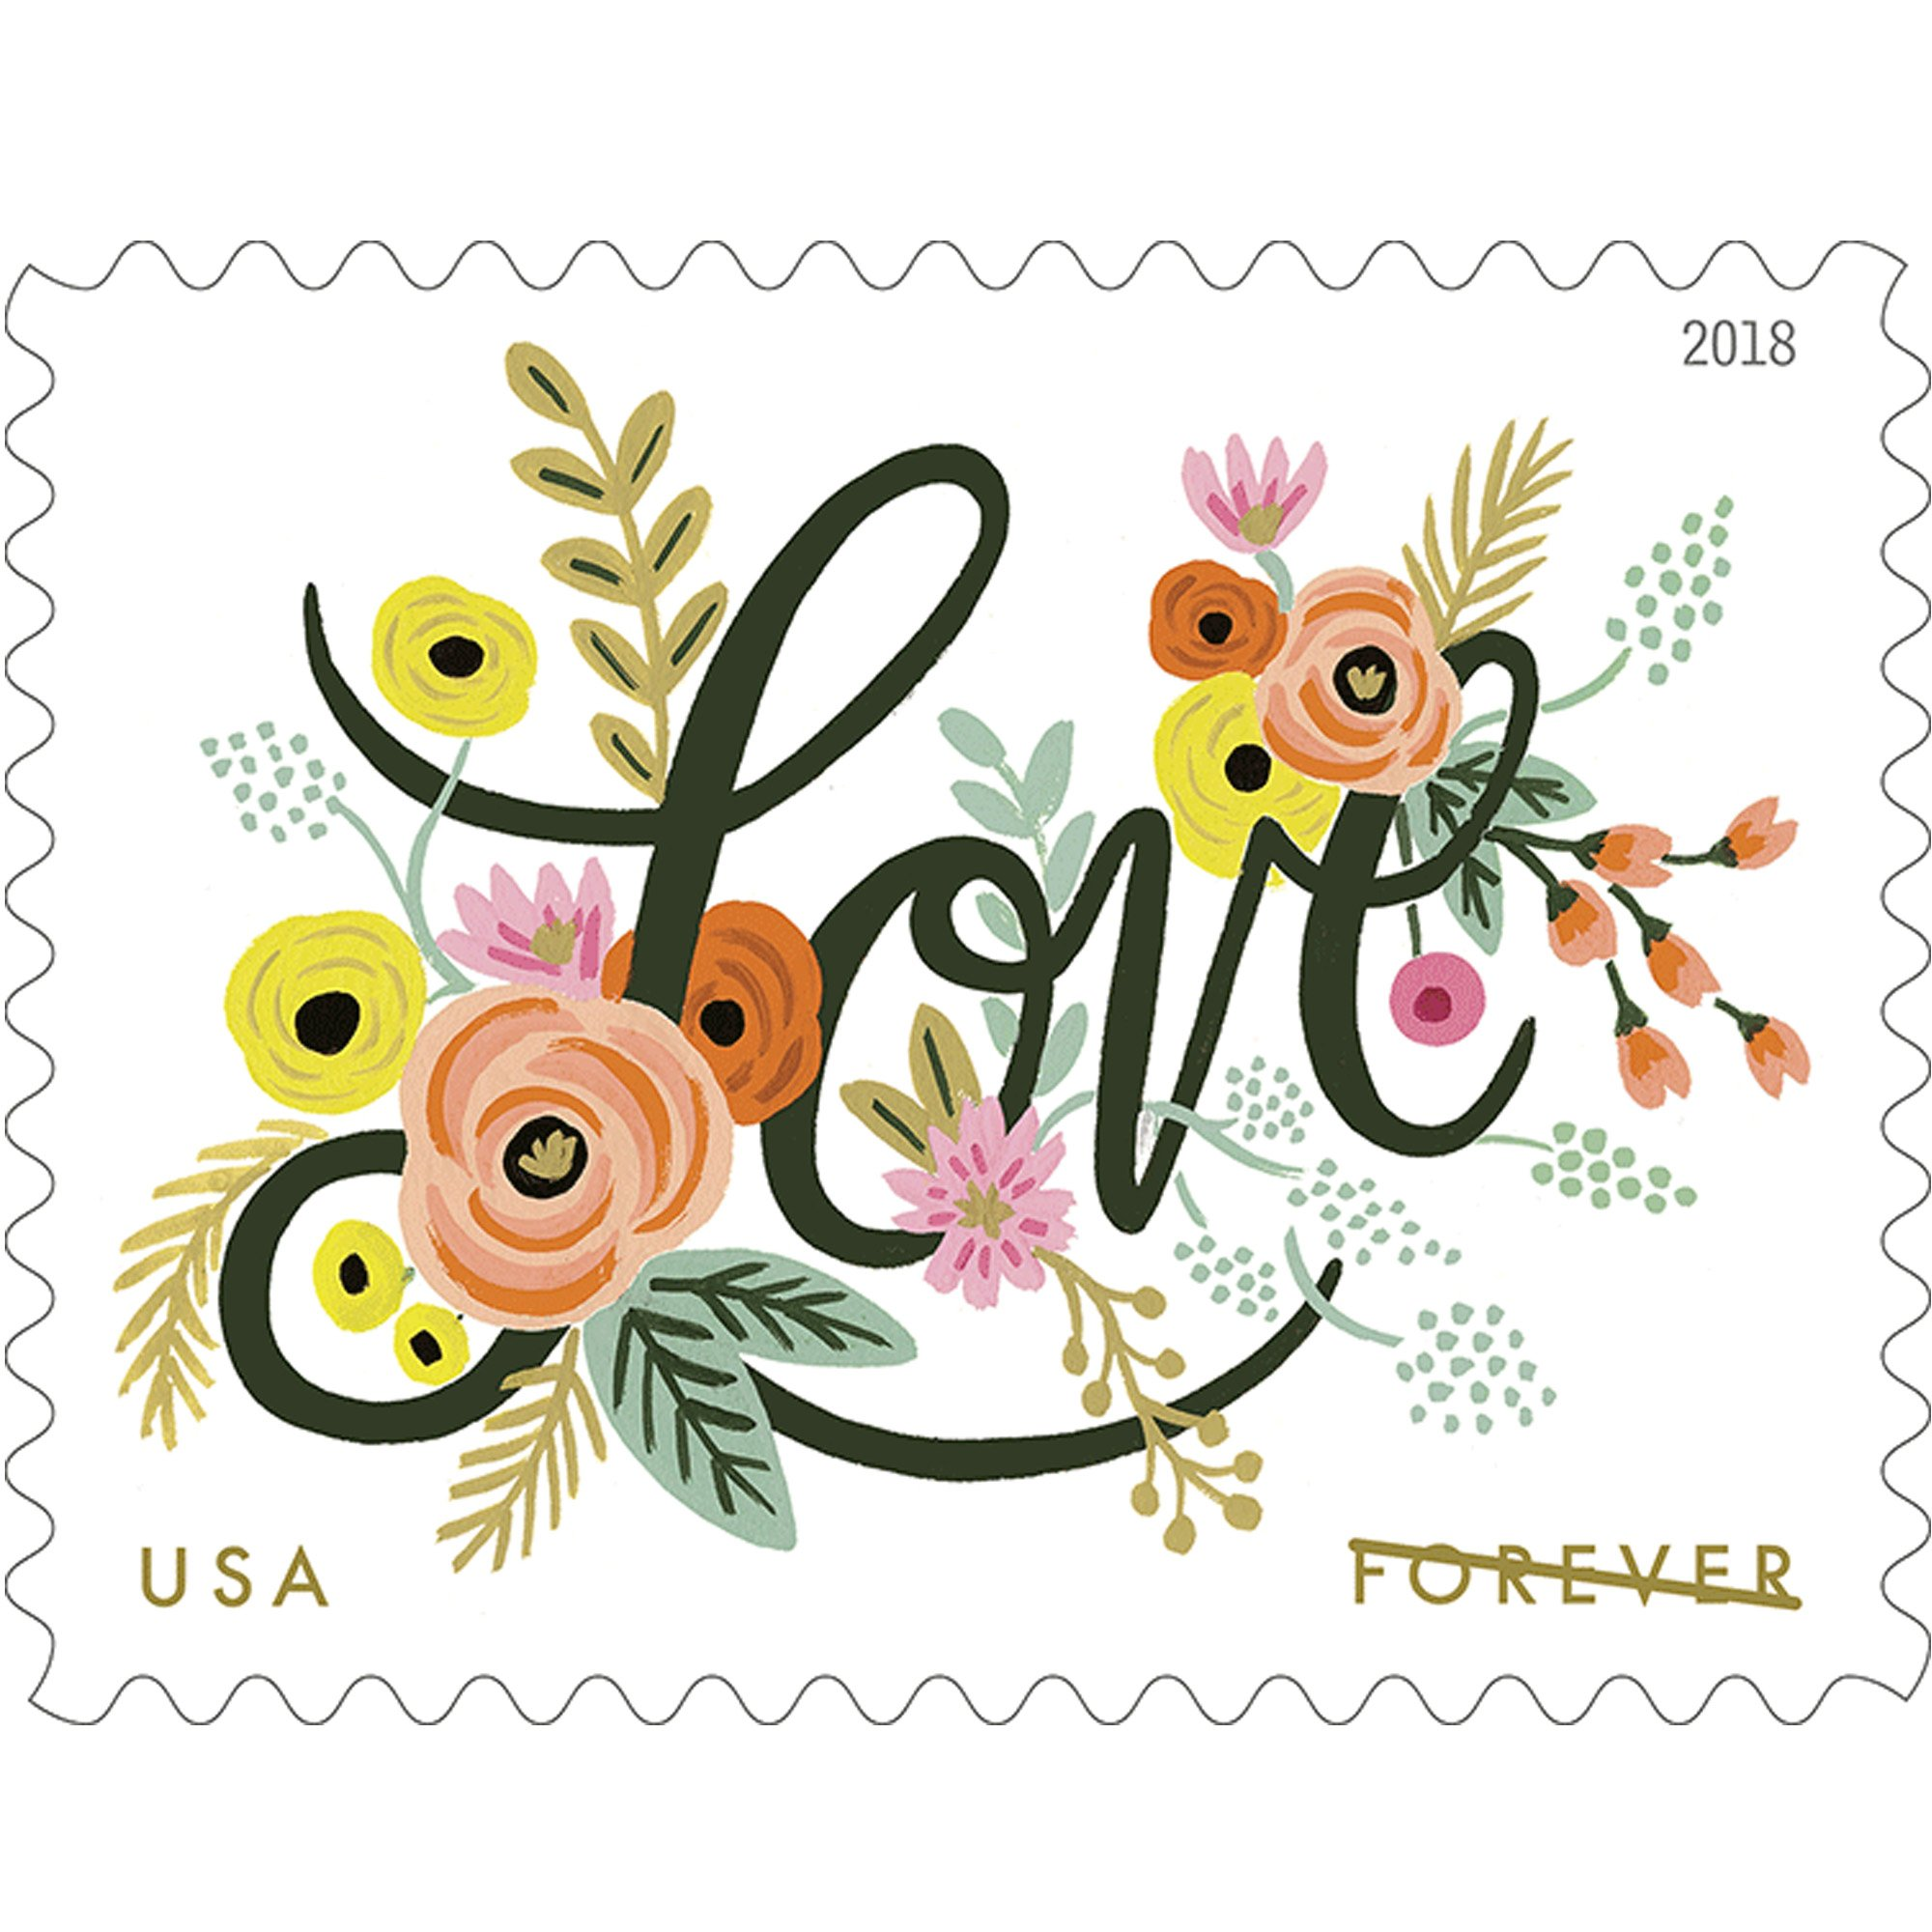 Love Flourishes Sheet of 20 Forever USPS First Class Postage Stamps Wedding Love Valentine